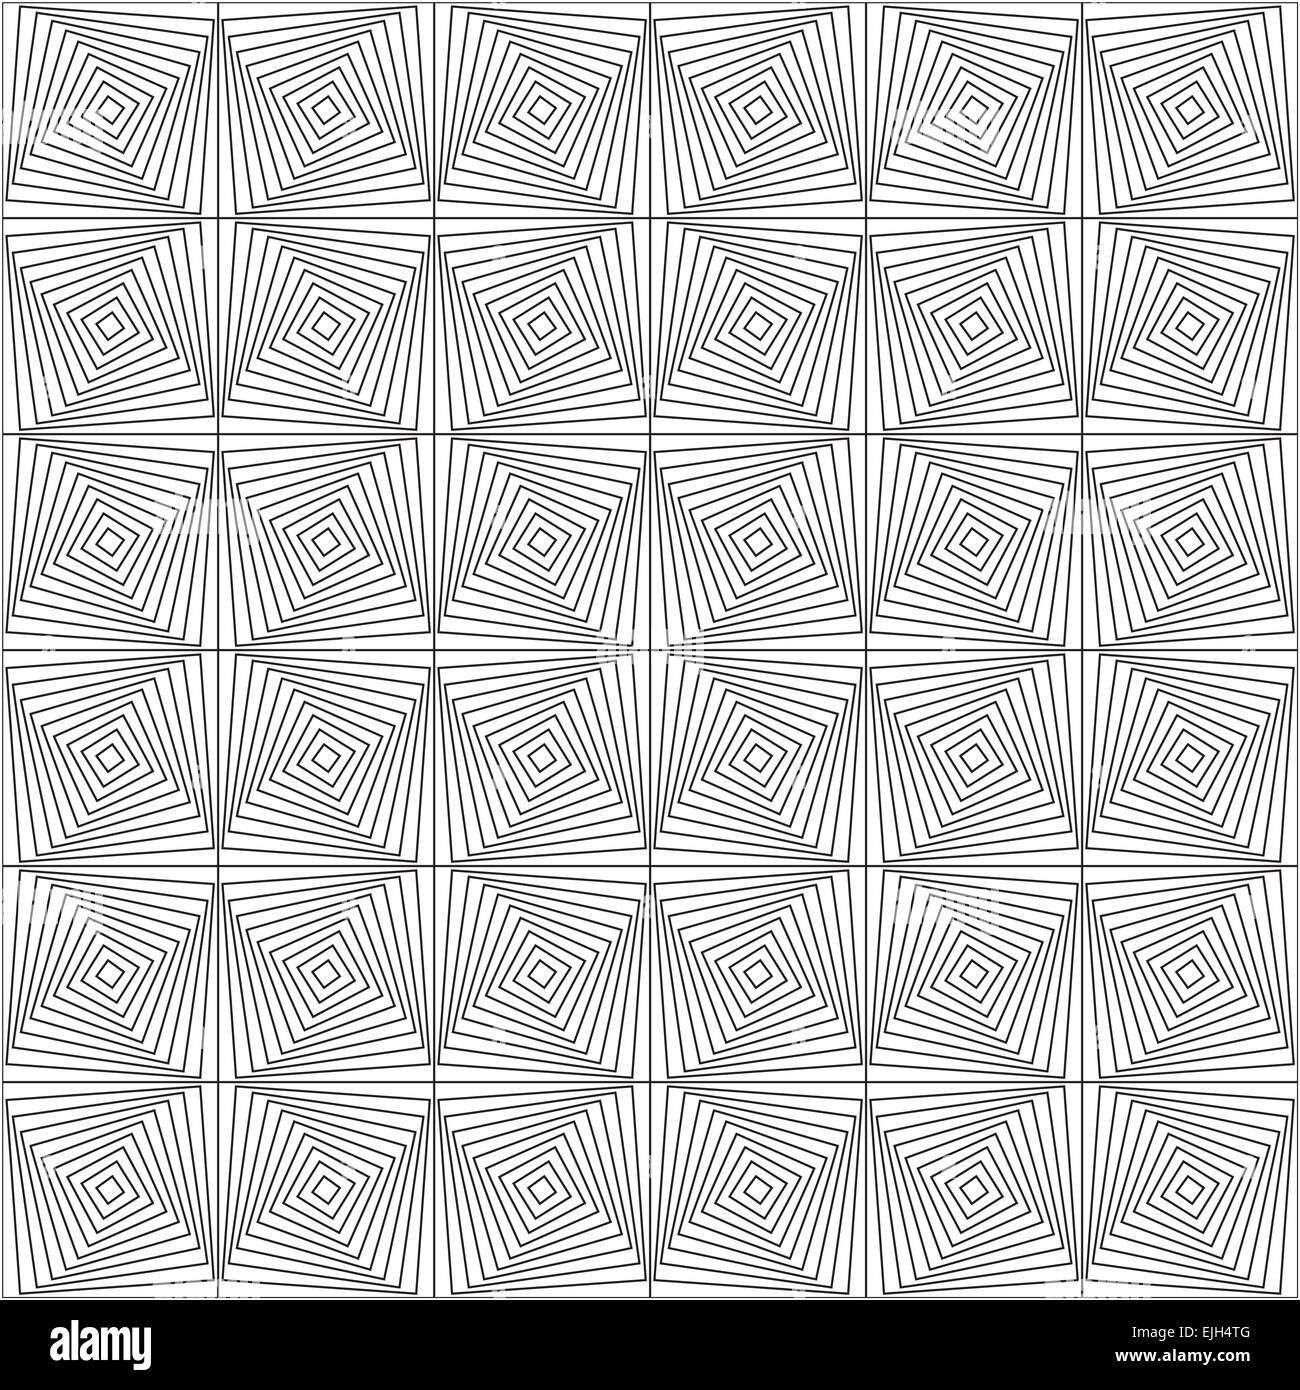 Symmetrical Geometric Shapes Black And White Vector Textile Backdrop. Can  Be Use As Fabric Tablecloth Pattern.